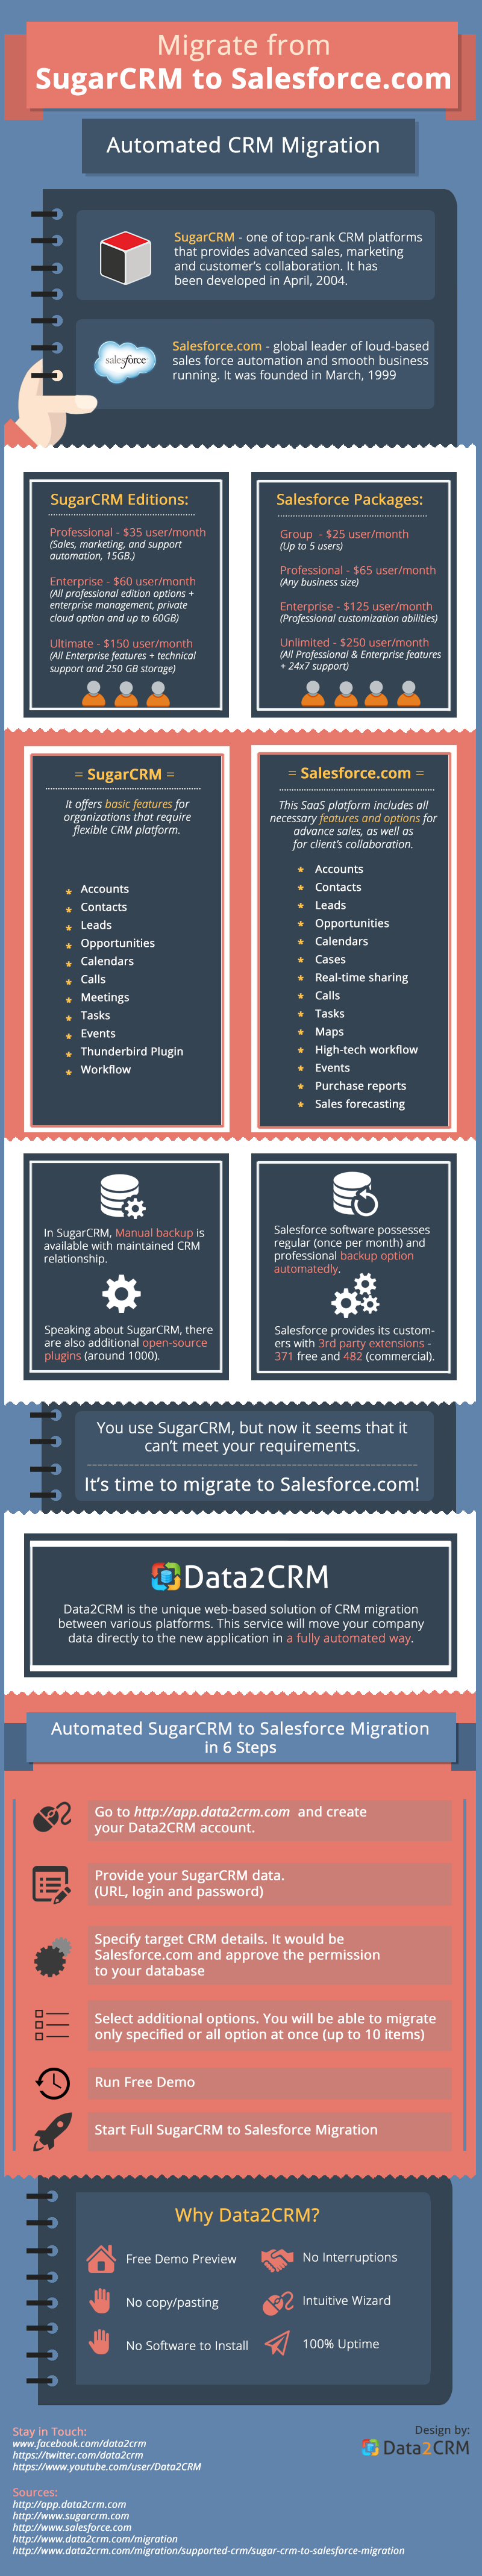 SugarCRM to Salesforce Migration: Play Your Cards Right [Infographic]